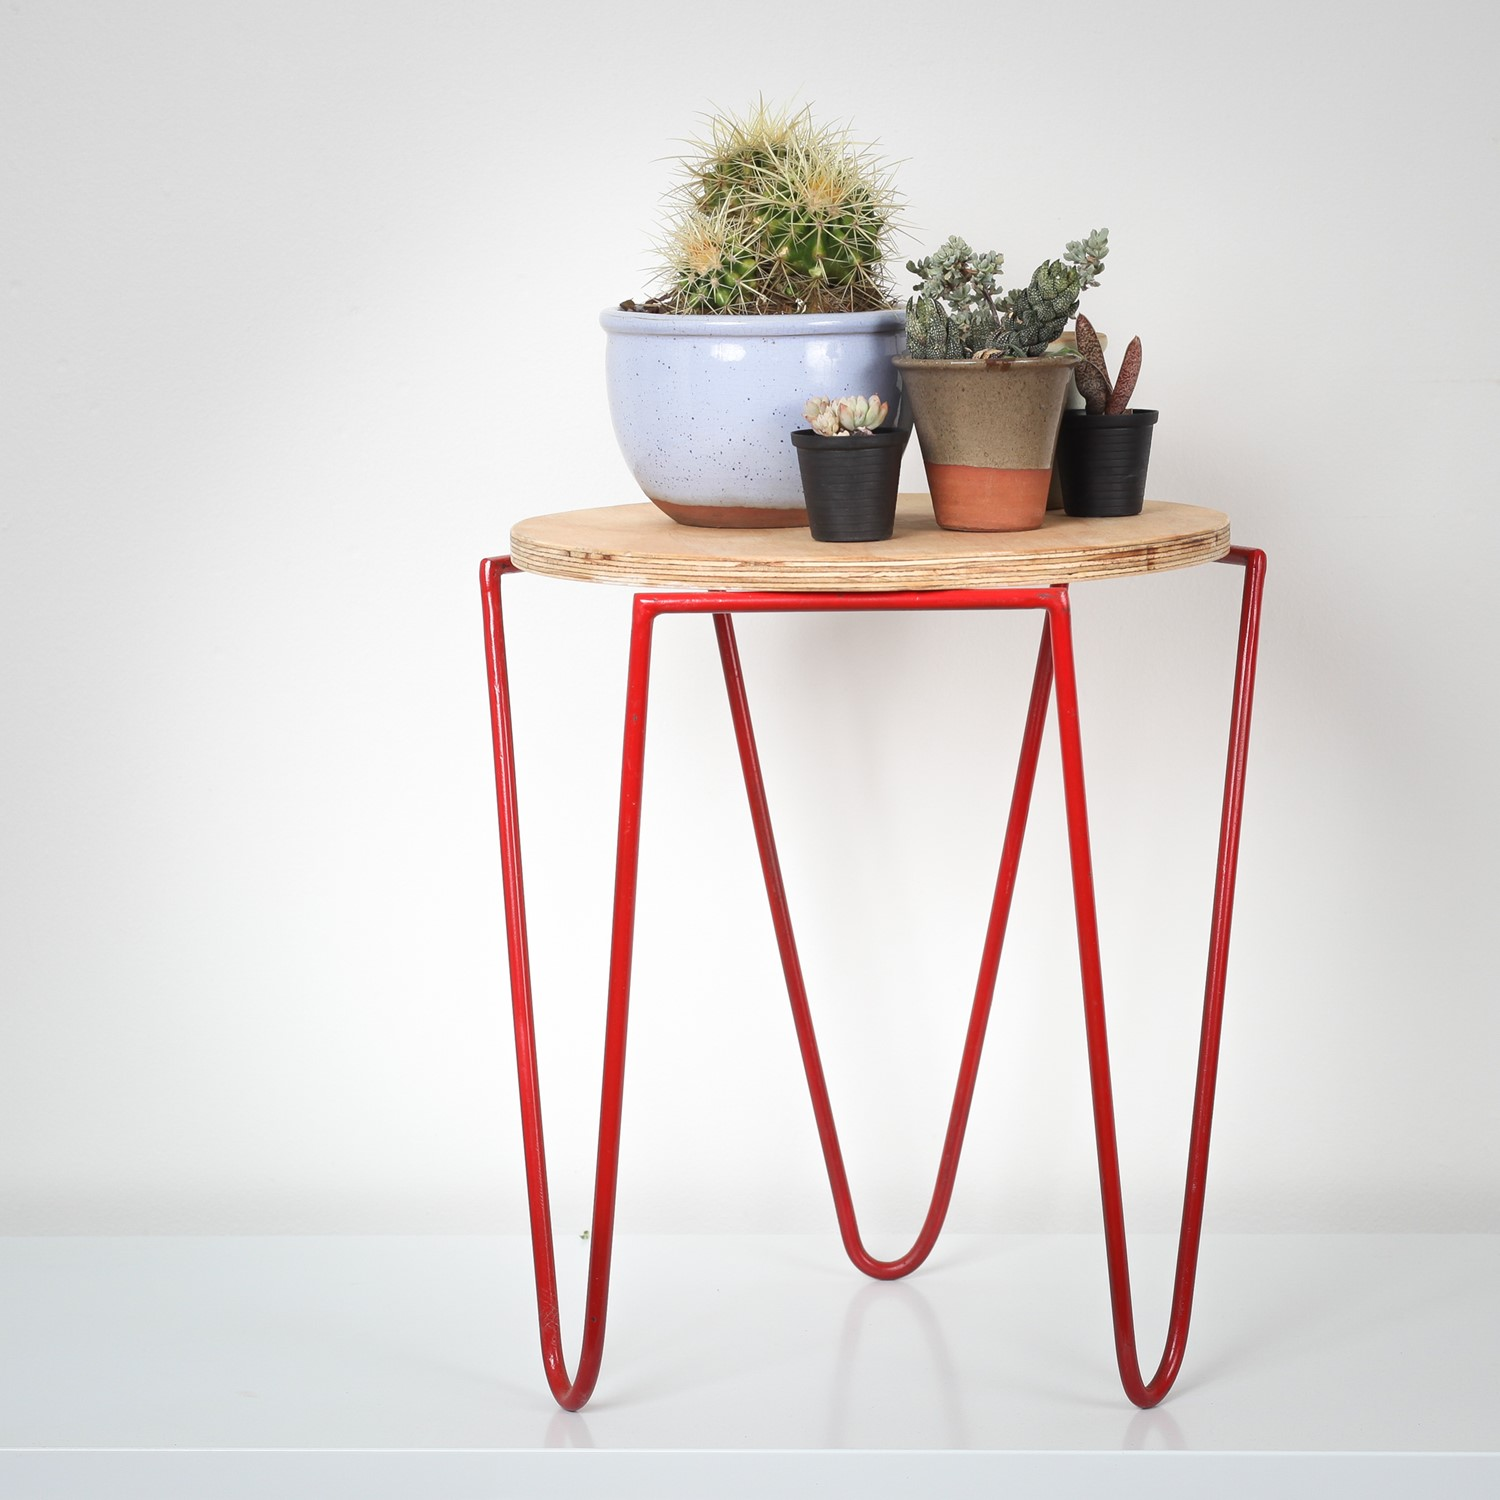 Red Metal Utility Stool